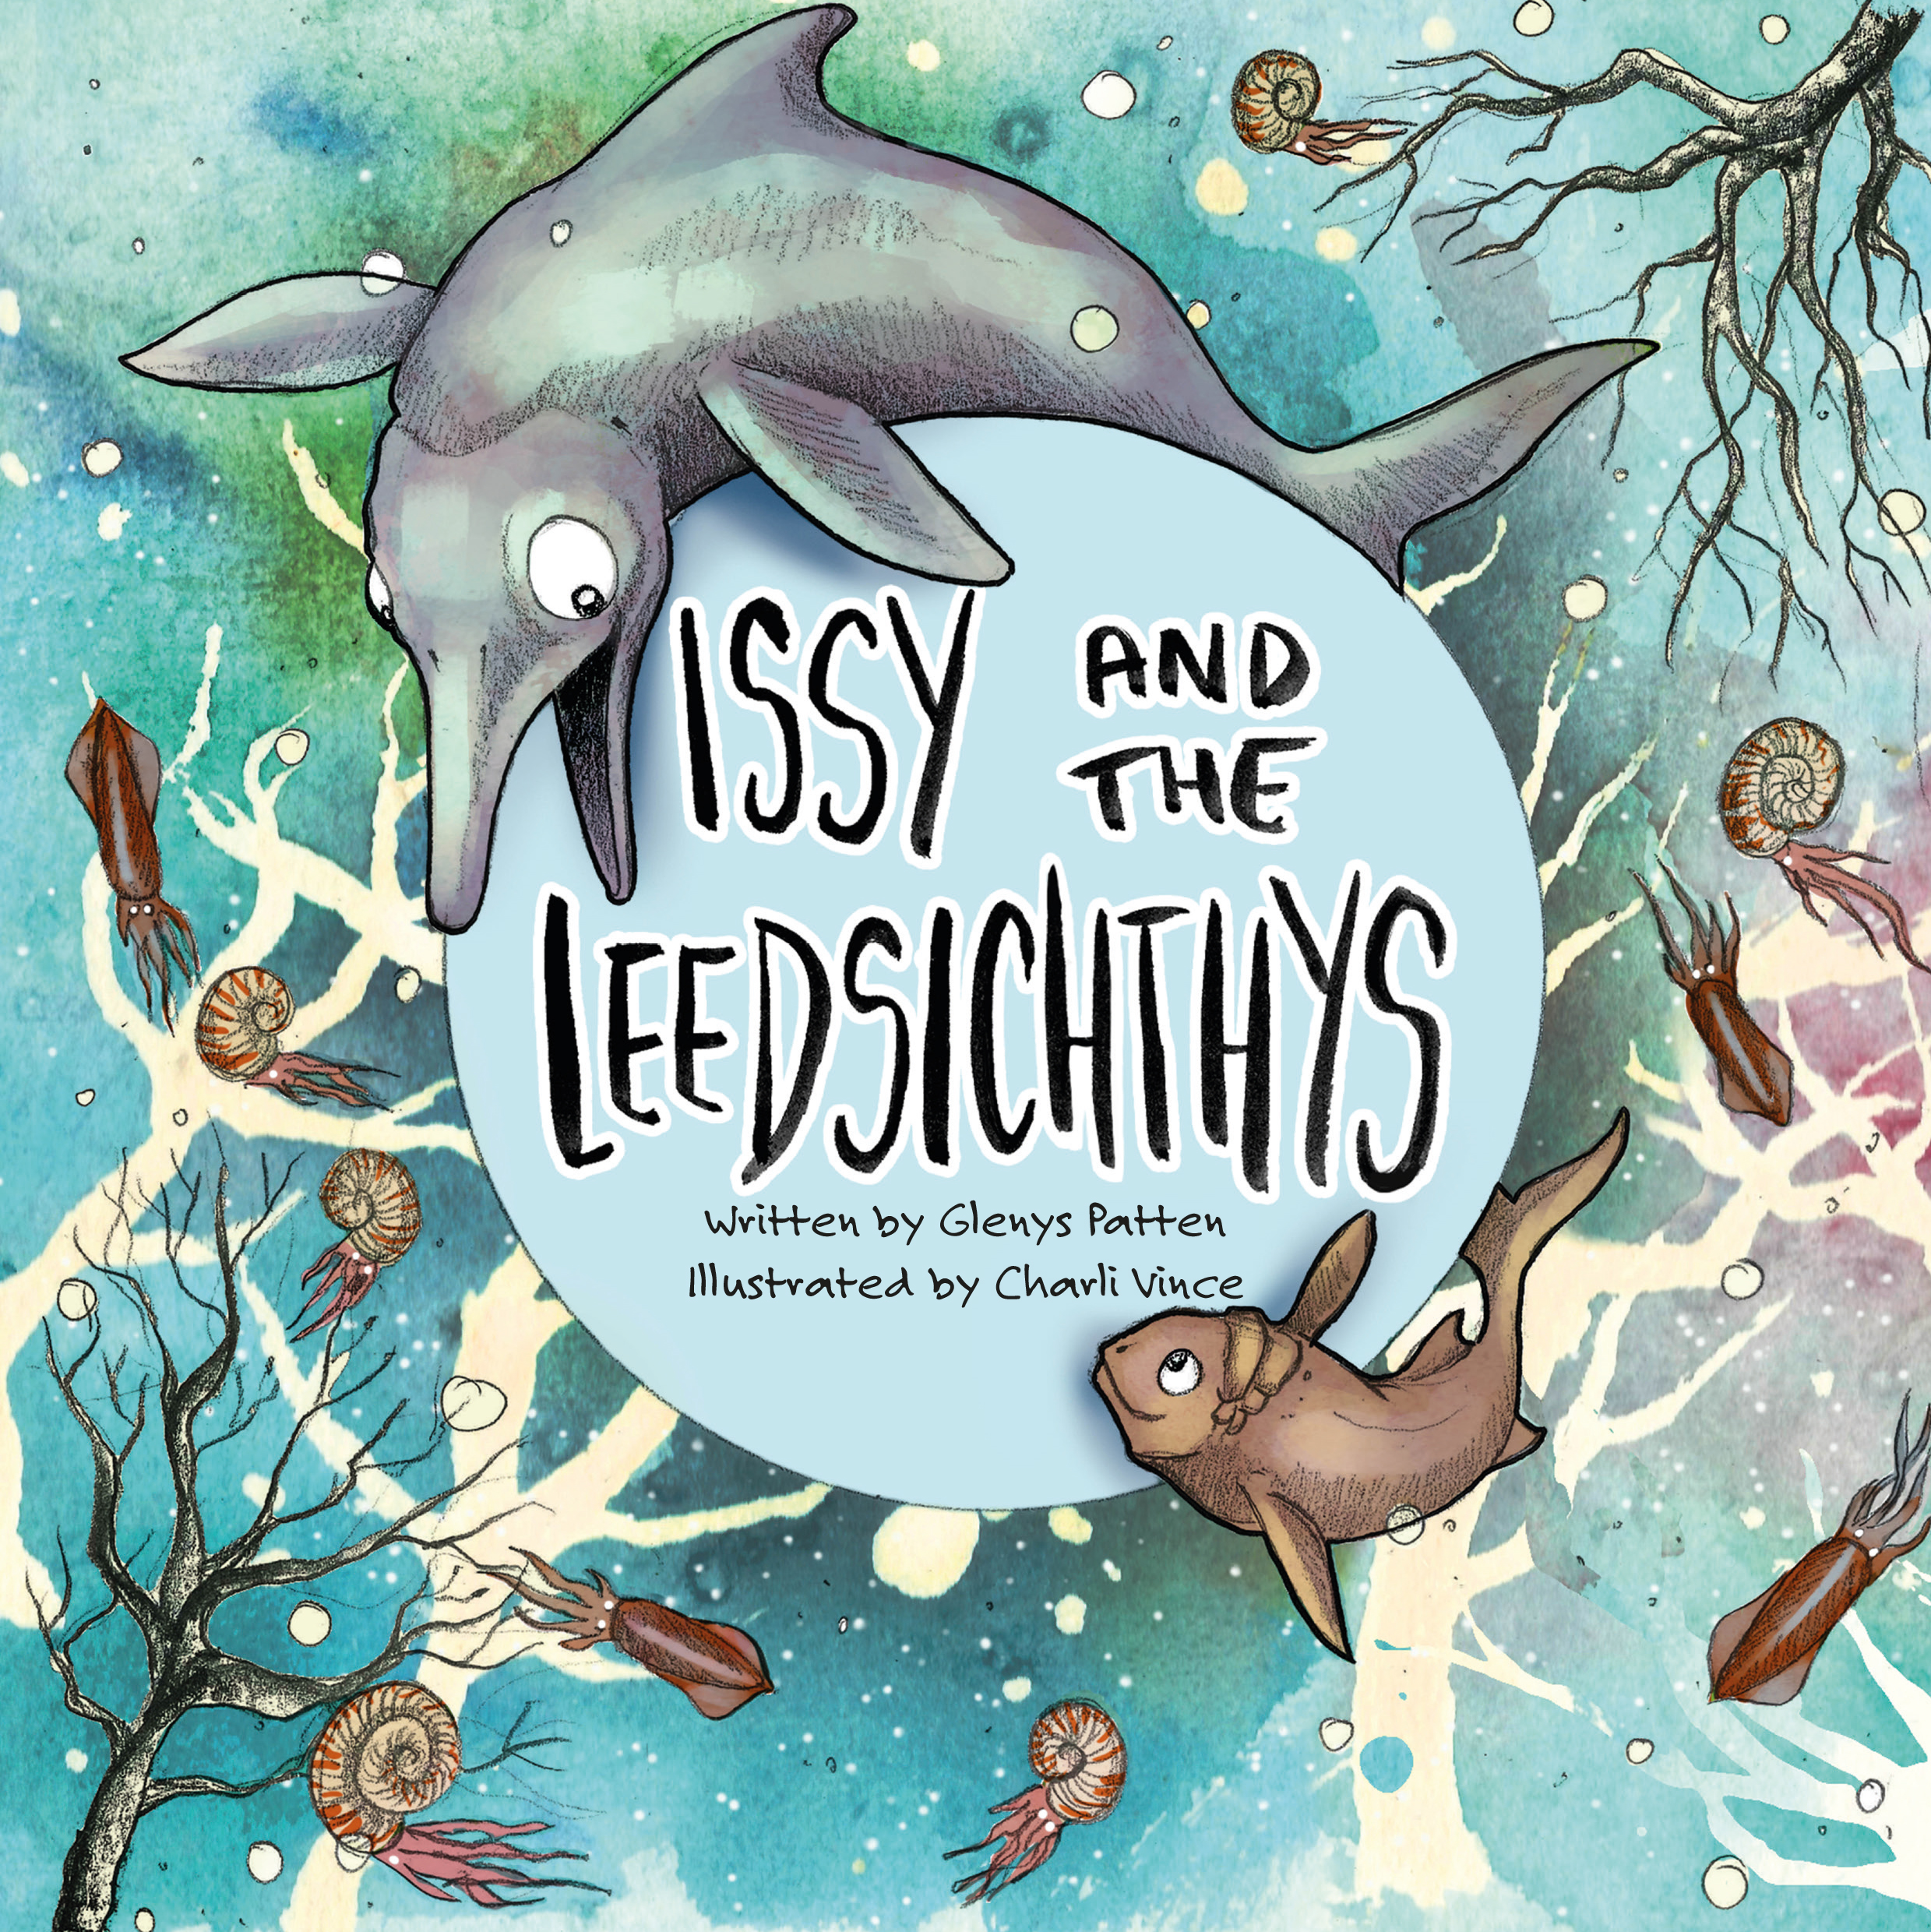 Issy the Ichthyosaur and the Leedsichthys